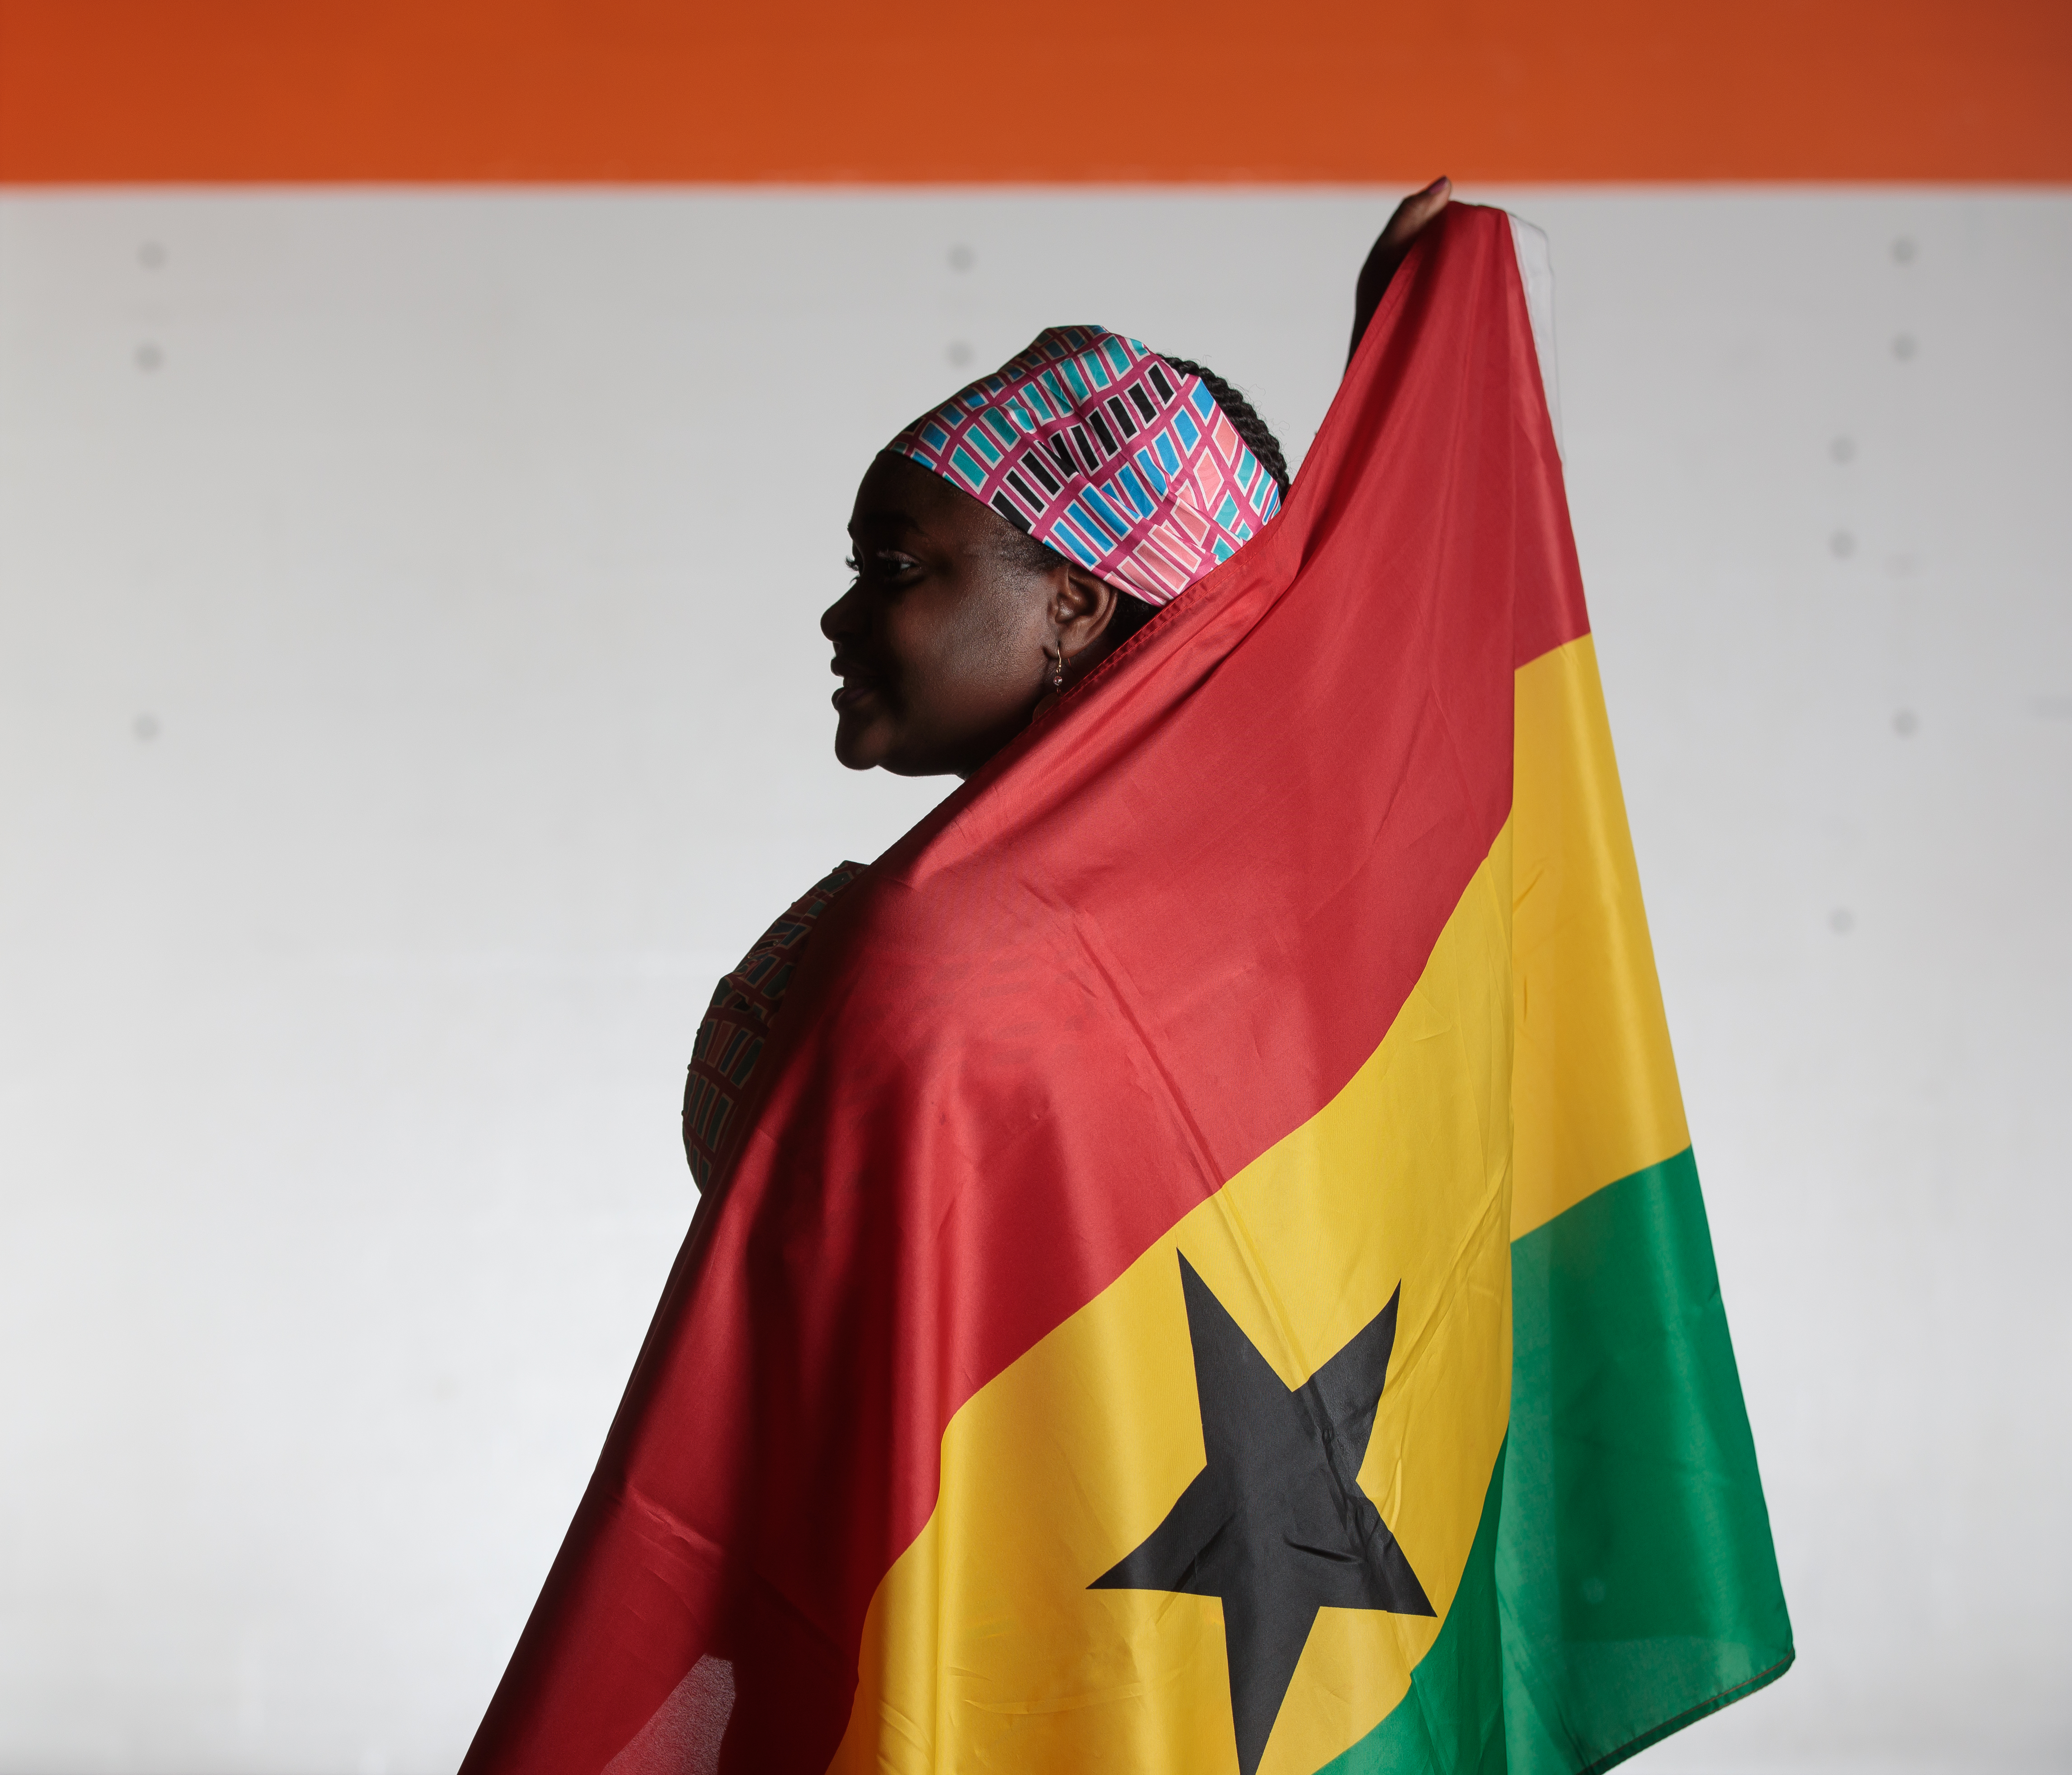 Amara Egbujor holds the flag of Ghana.